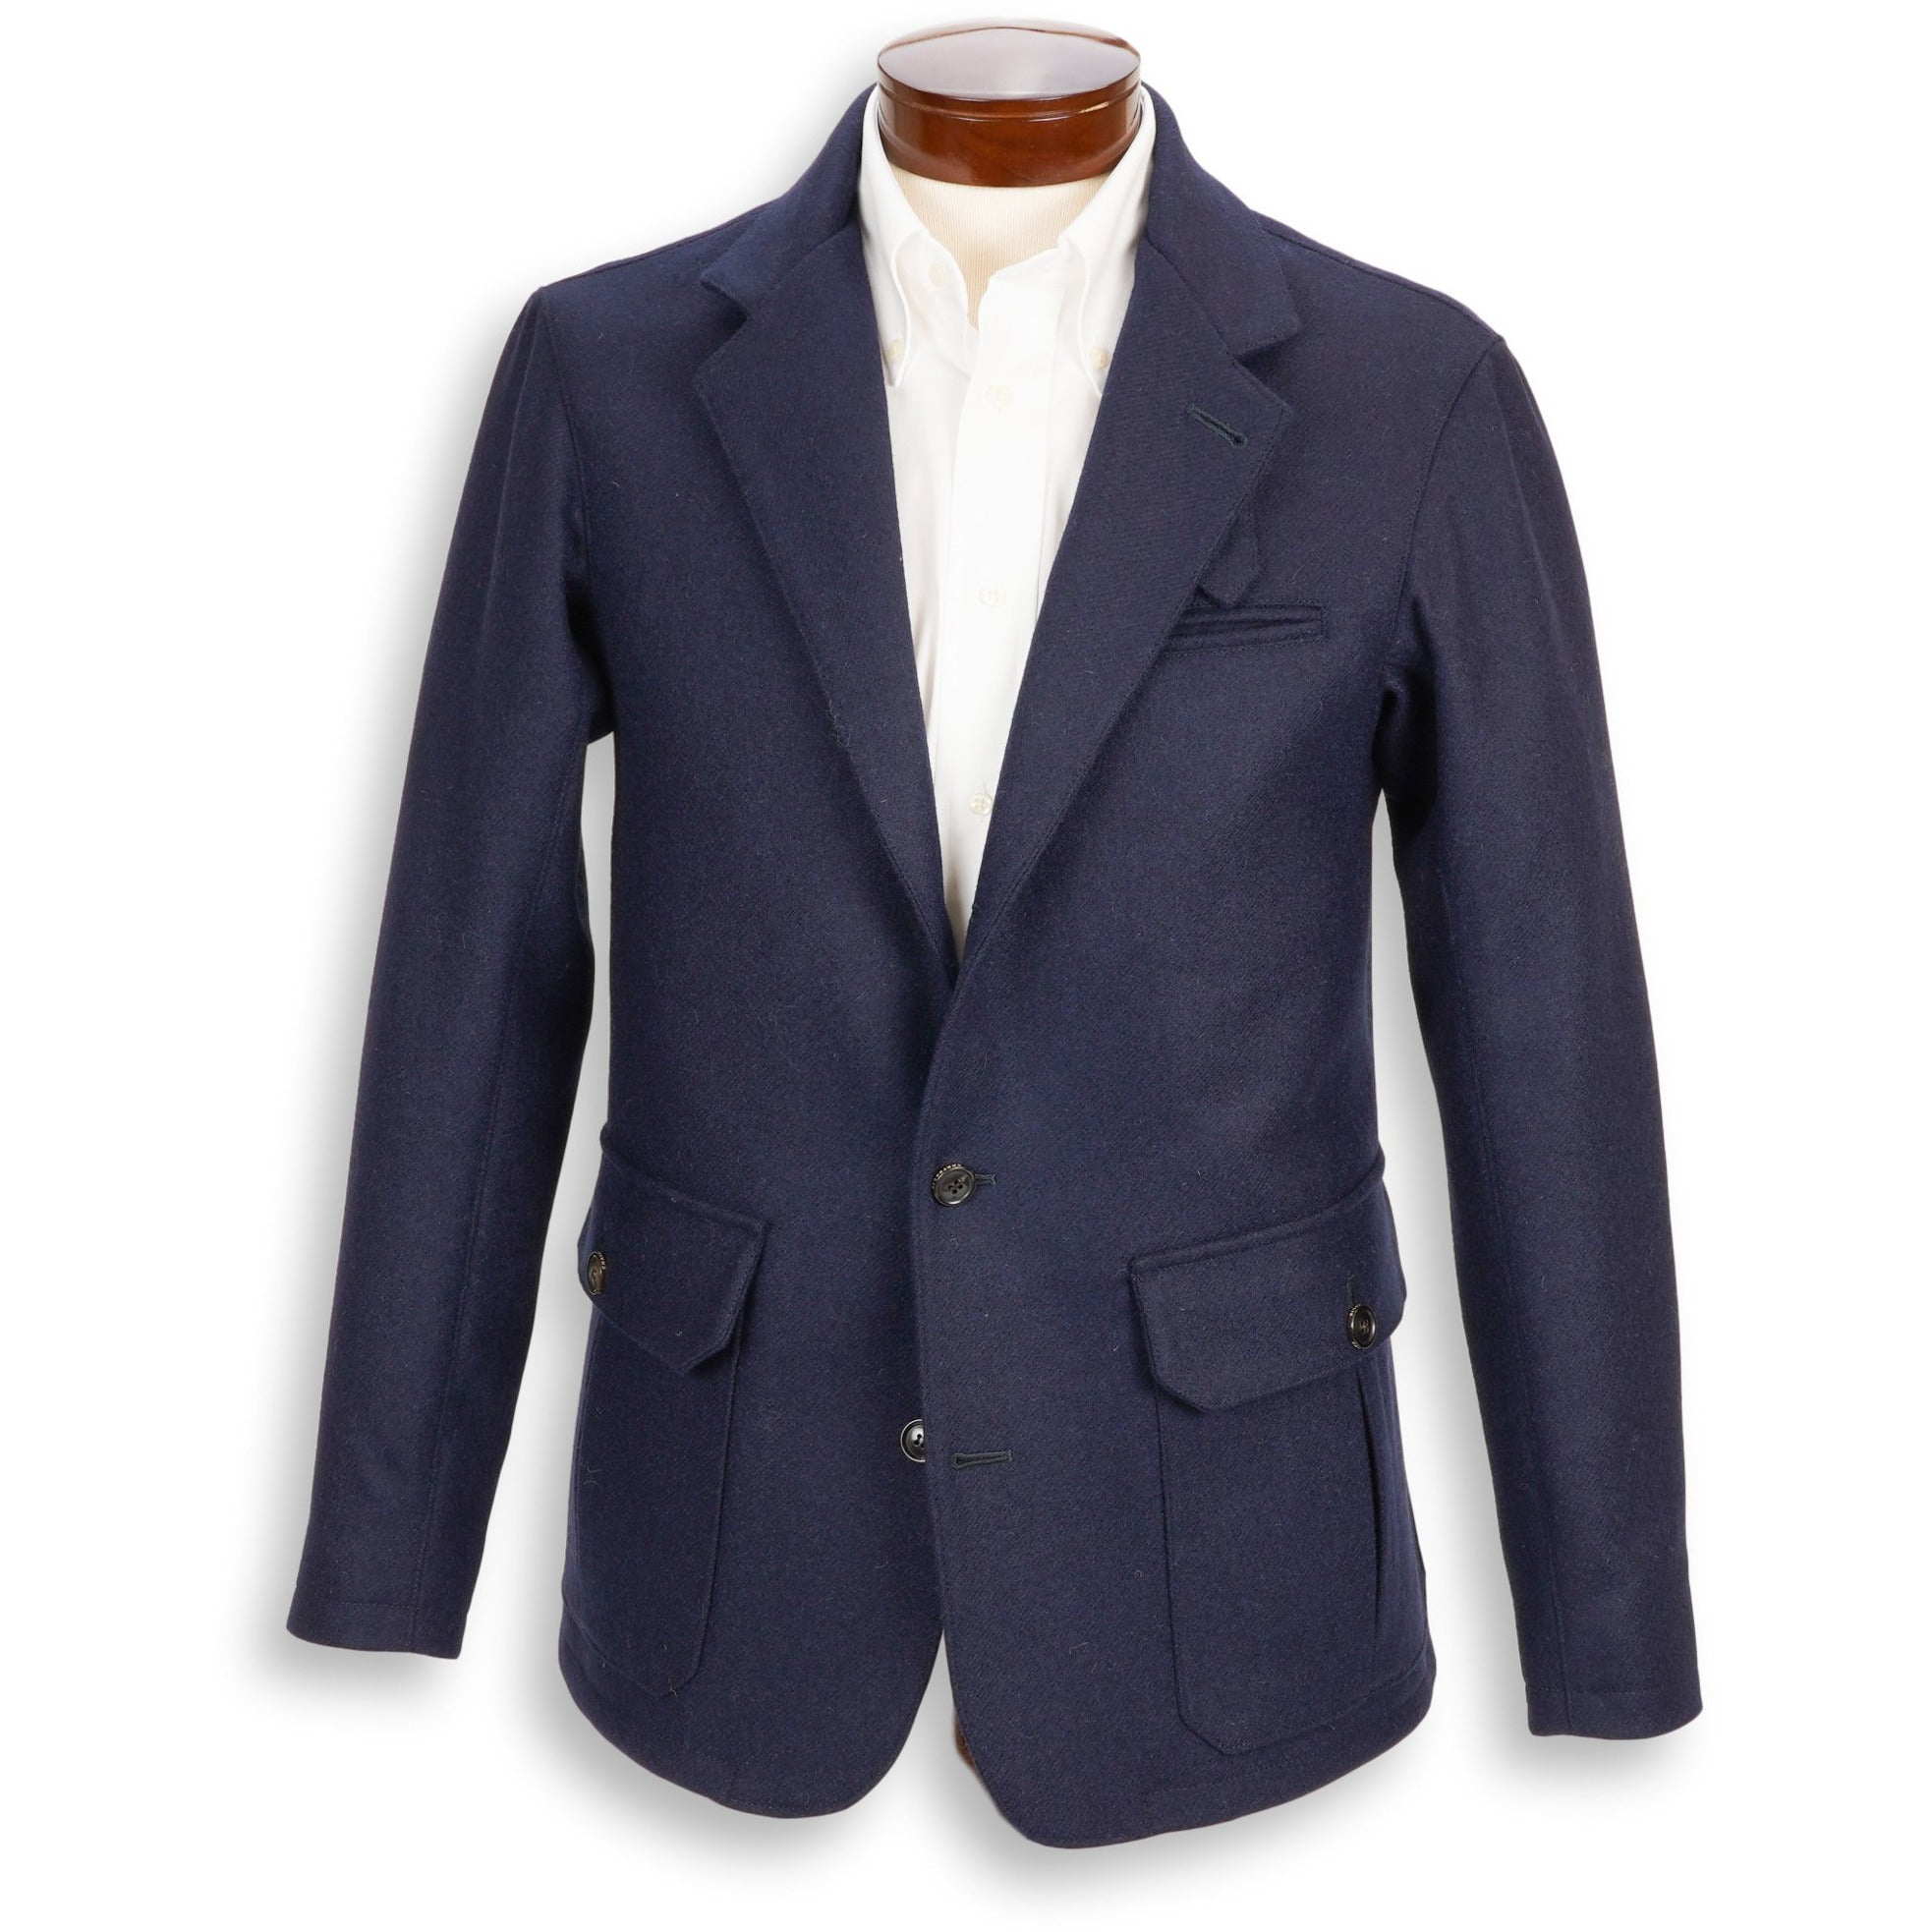 Chrysalis Coogan Navy Loden Jacket